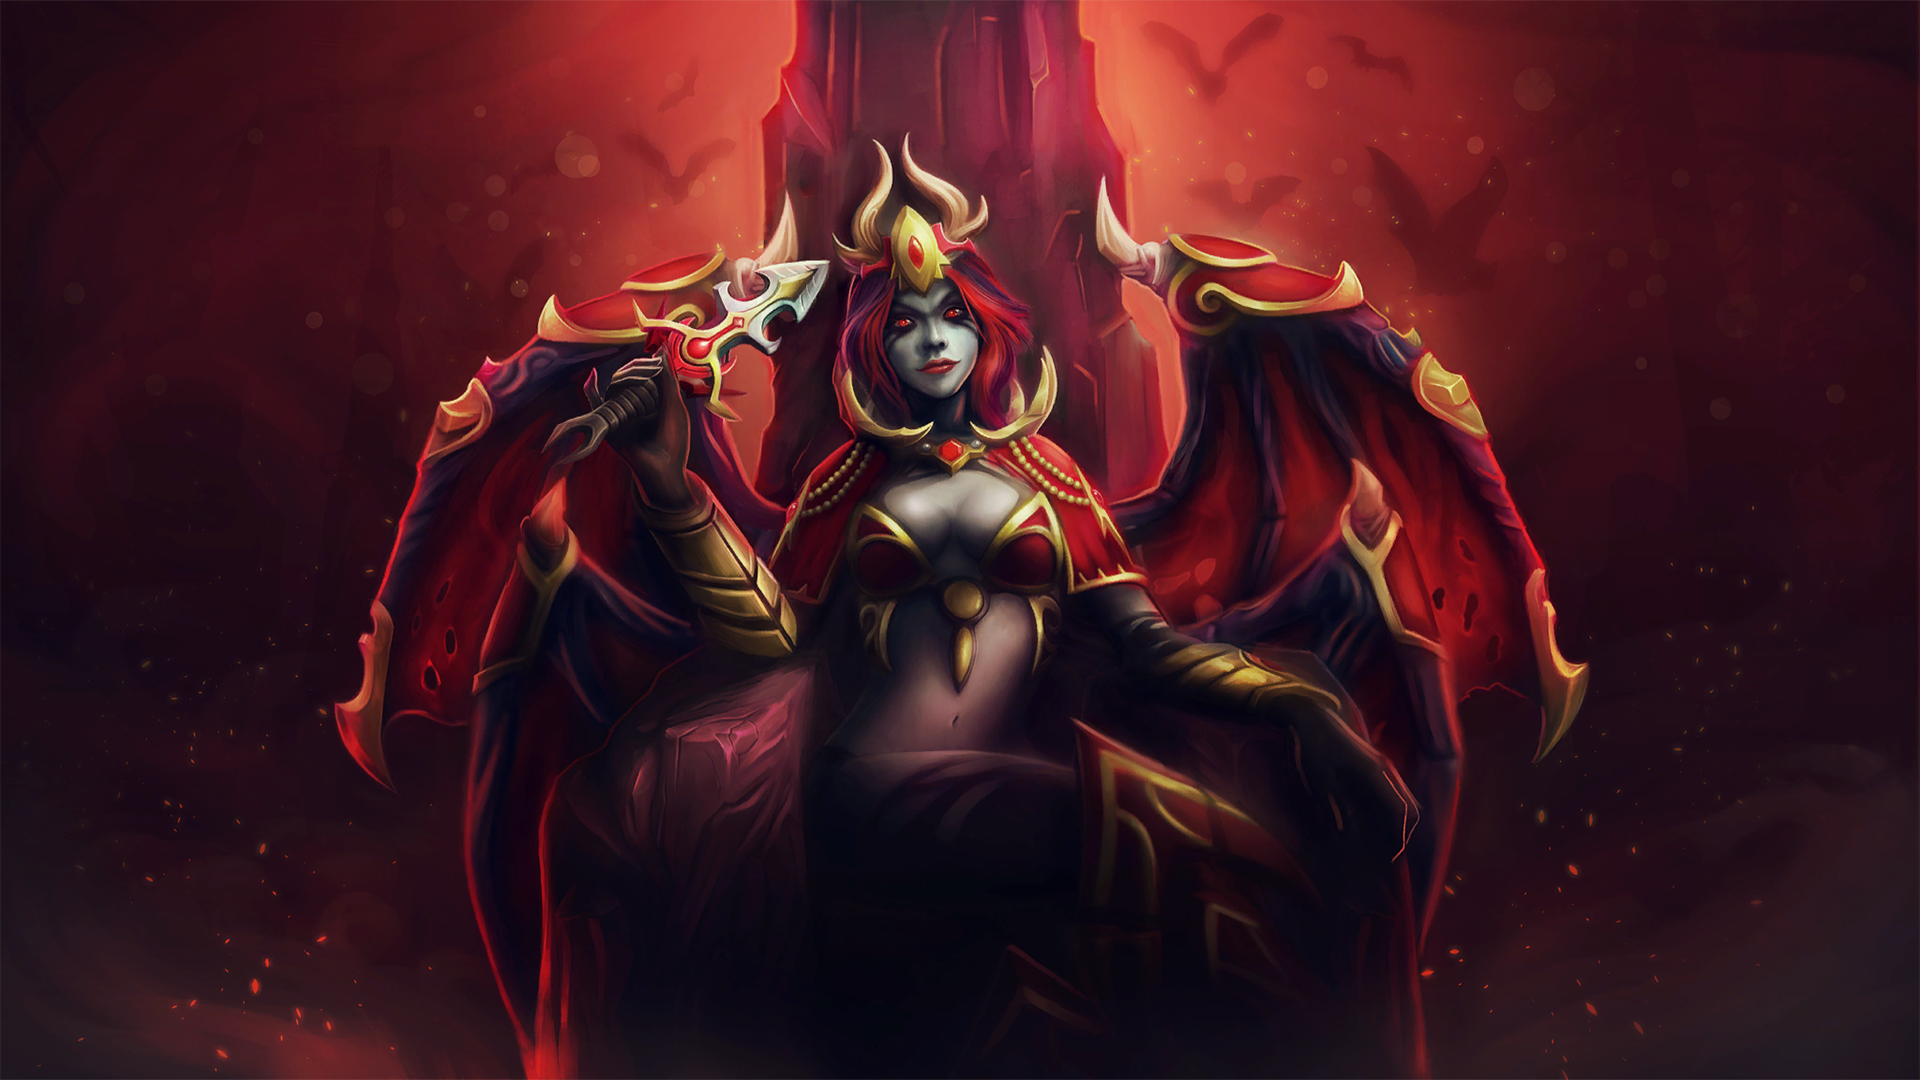 Queen Of Pain Wallpaper